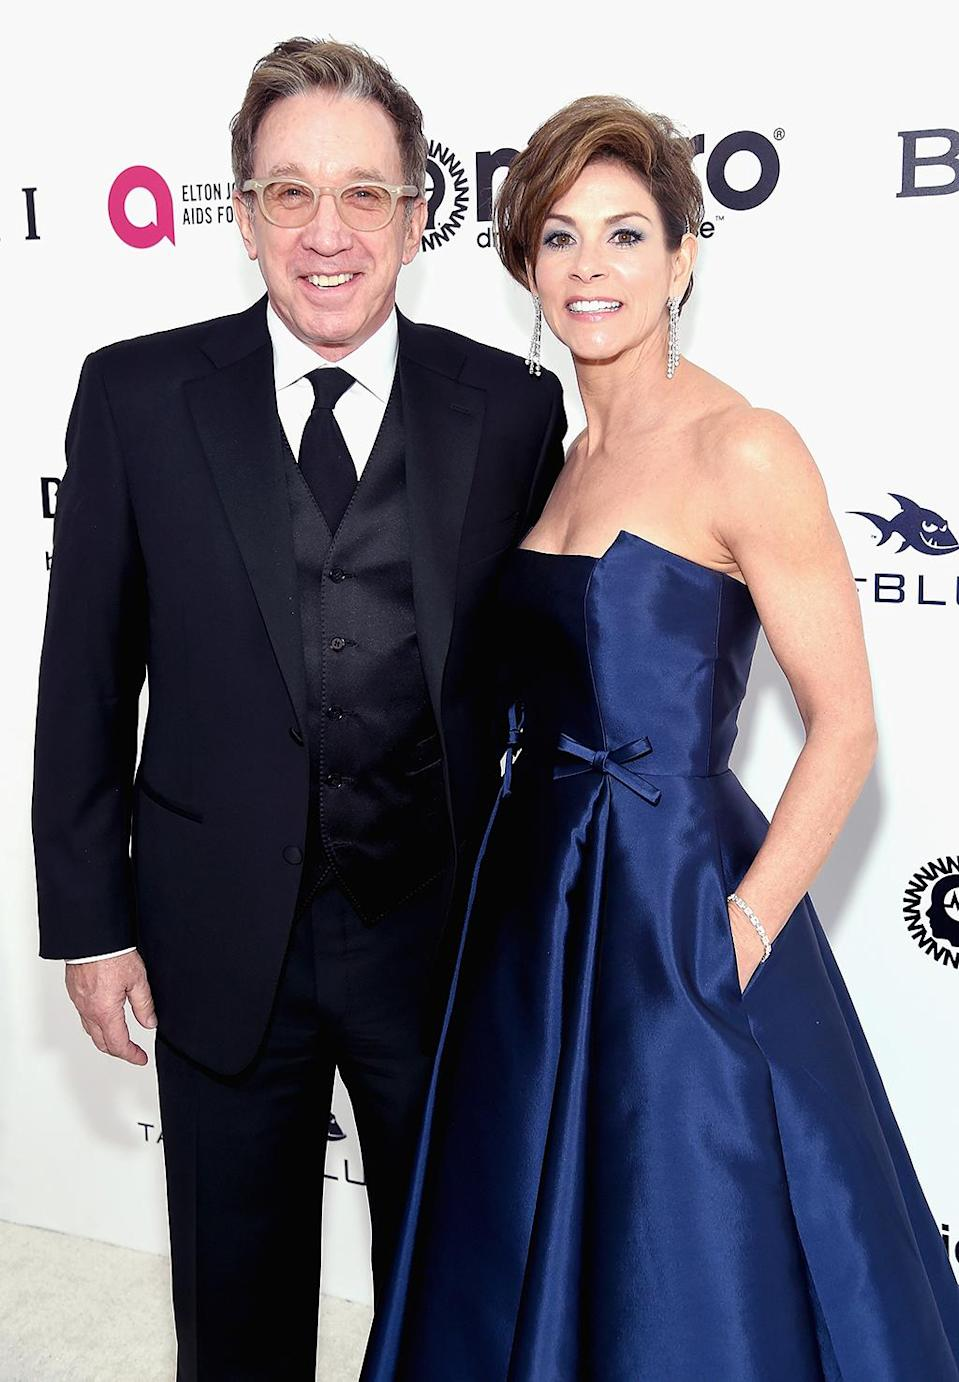 <p>Tim Allen and Jane Allen attend the 25th Annual Elton John AIDS Foundation's Academy Awards Viewing Party at The City of West Hollywood Park on February 26, 2017 in West Hollywood, California. (Photo by Jamie McCarthy/Getty Images for EJAF) </p>